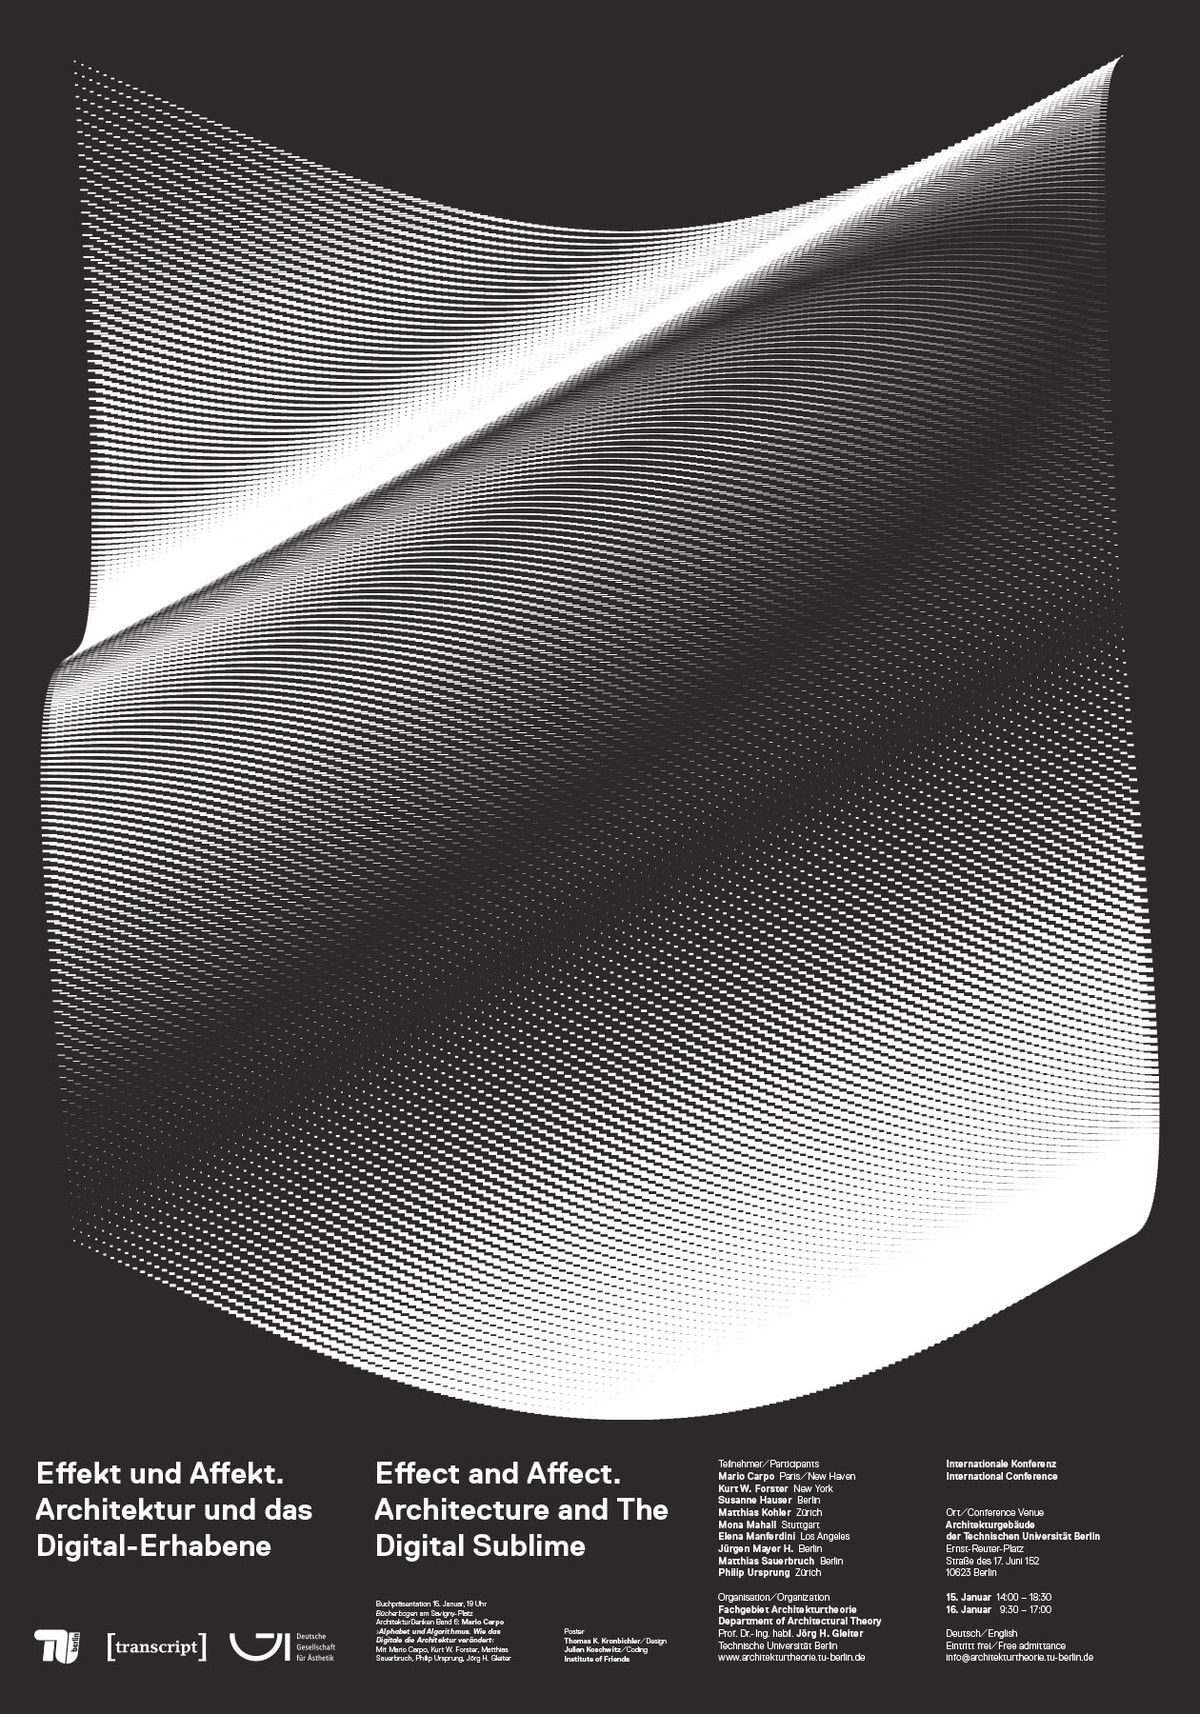 Poster design monochrome - The Following Is A Selection Of Posters Designed By Studio Mut Some Of Which Have Been Awarded International Design Awards